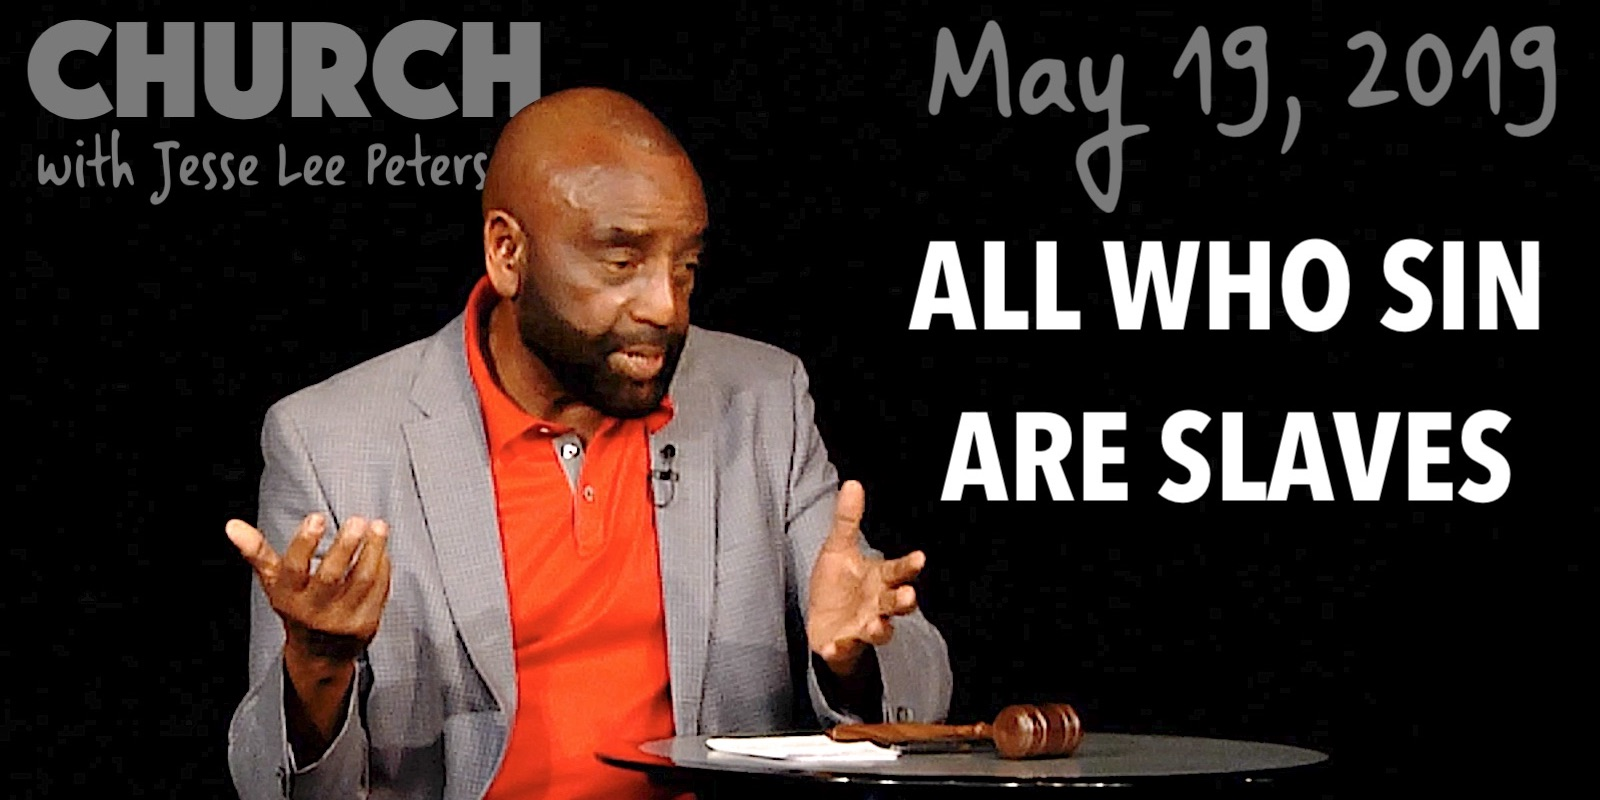 All Who Sin Are Slaves (Church, May 19, 2019)